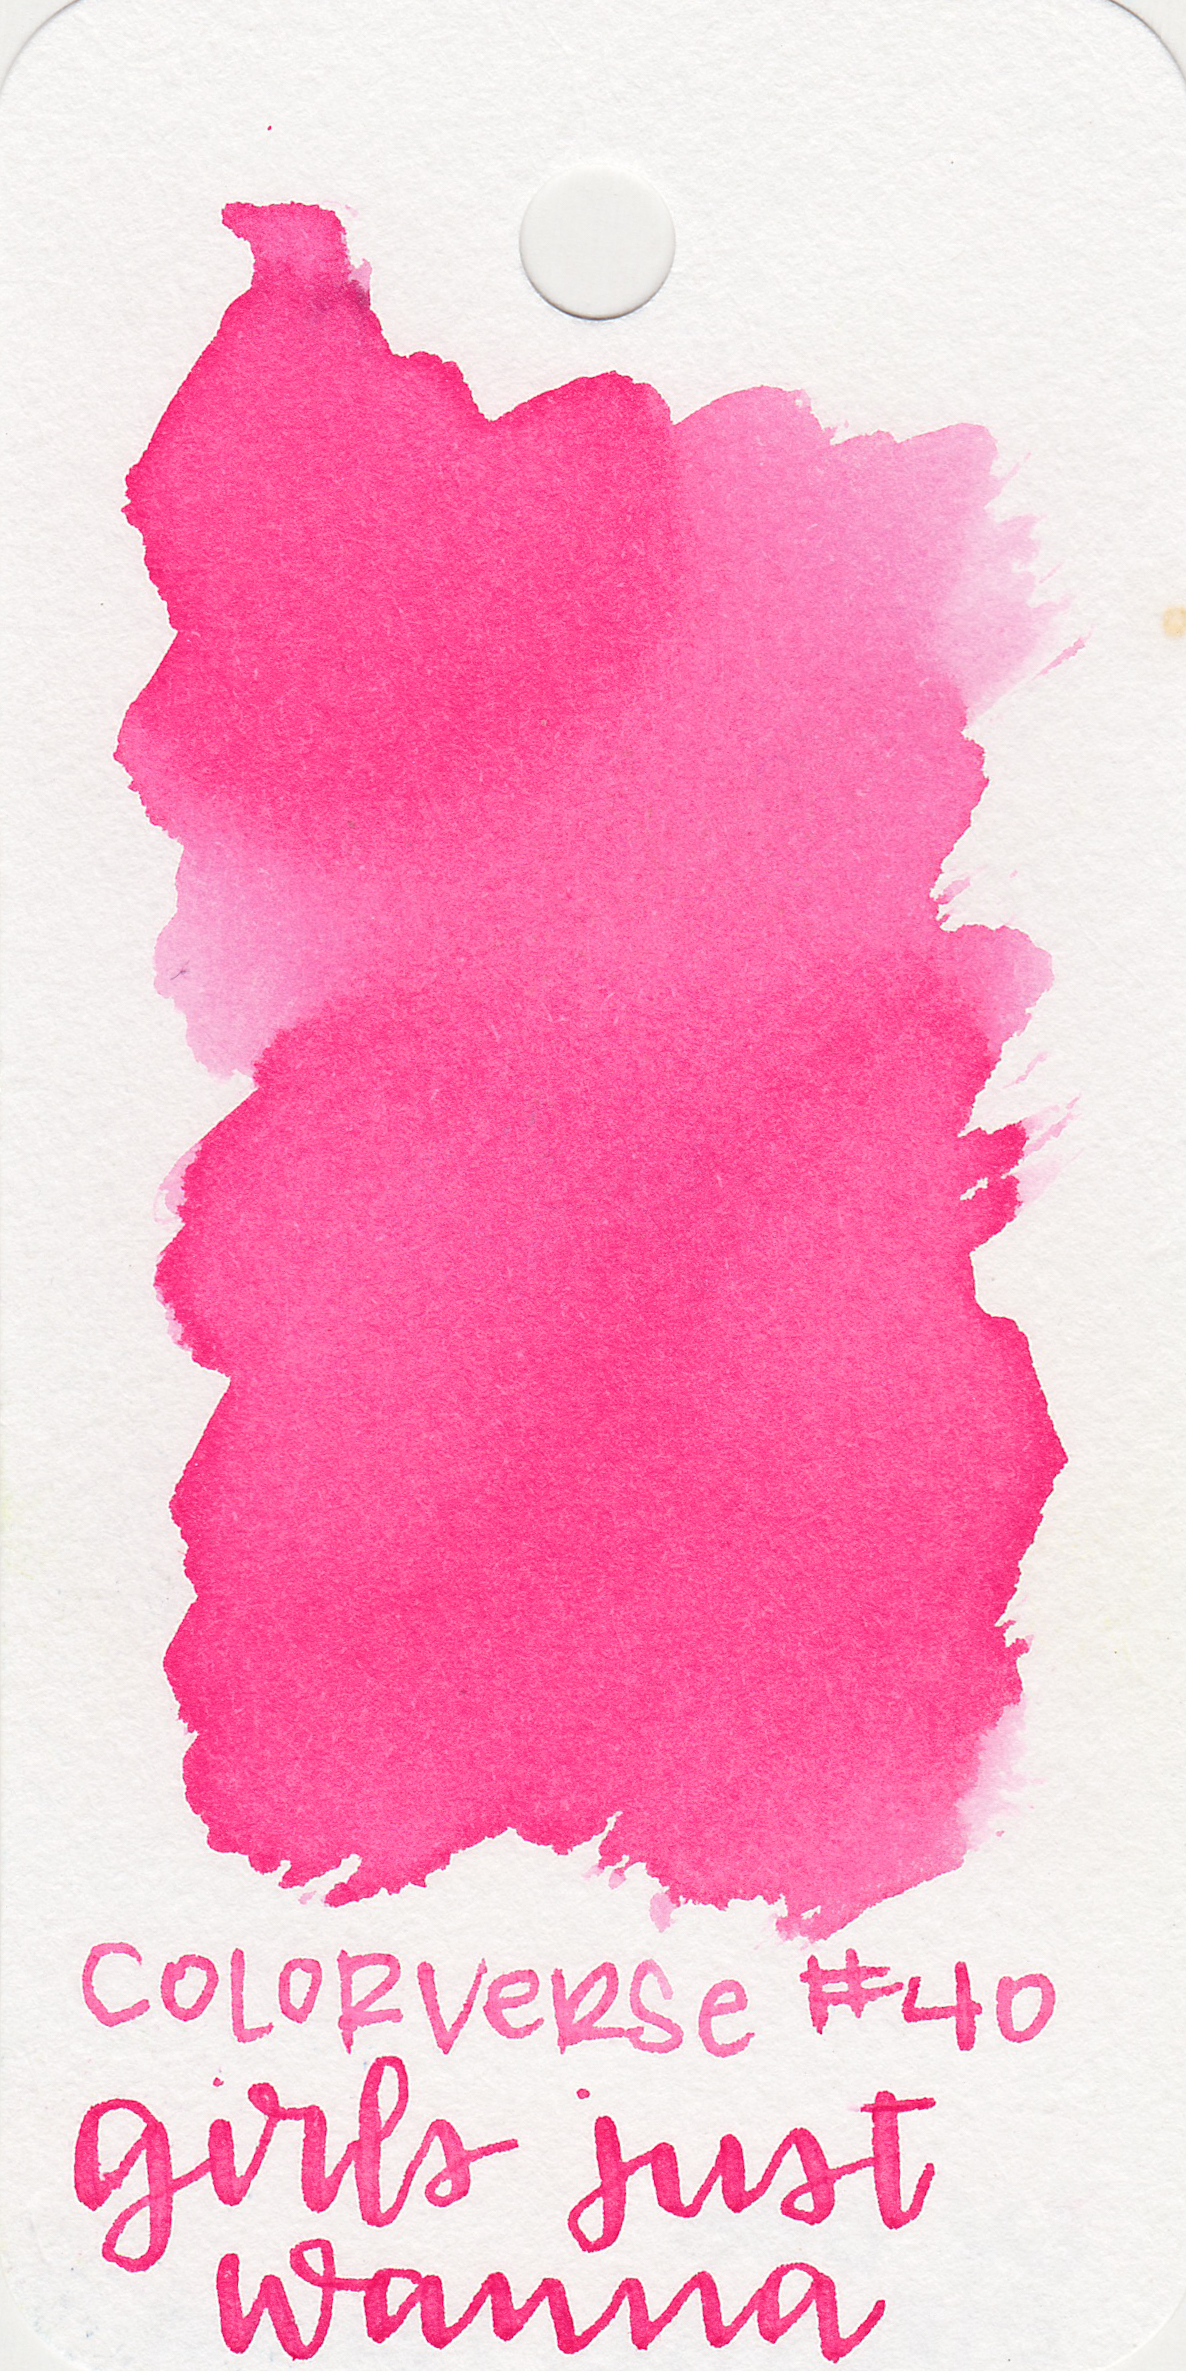 The color: - Girls Just Wanna is a lovely bubblegum pink.